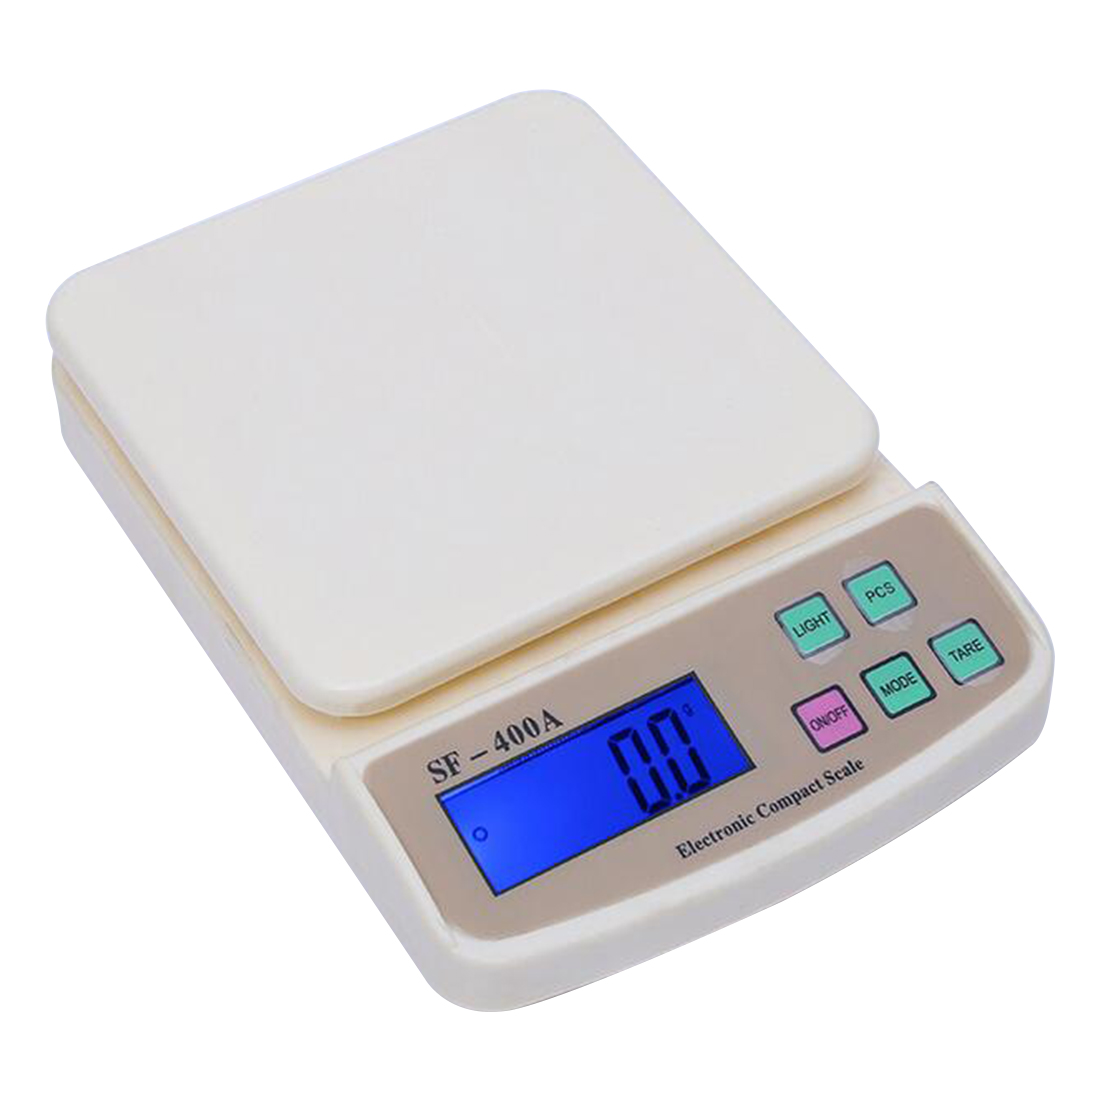 New Mini Digital Electronic scales Pocket 10Kg/1g Kitchen Weighing Scale LCD Display Backlight Scales kitchen foods cale